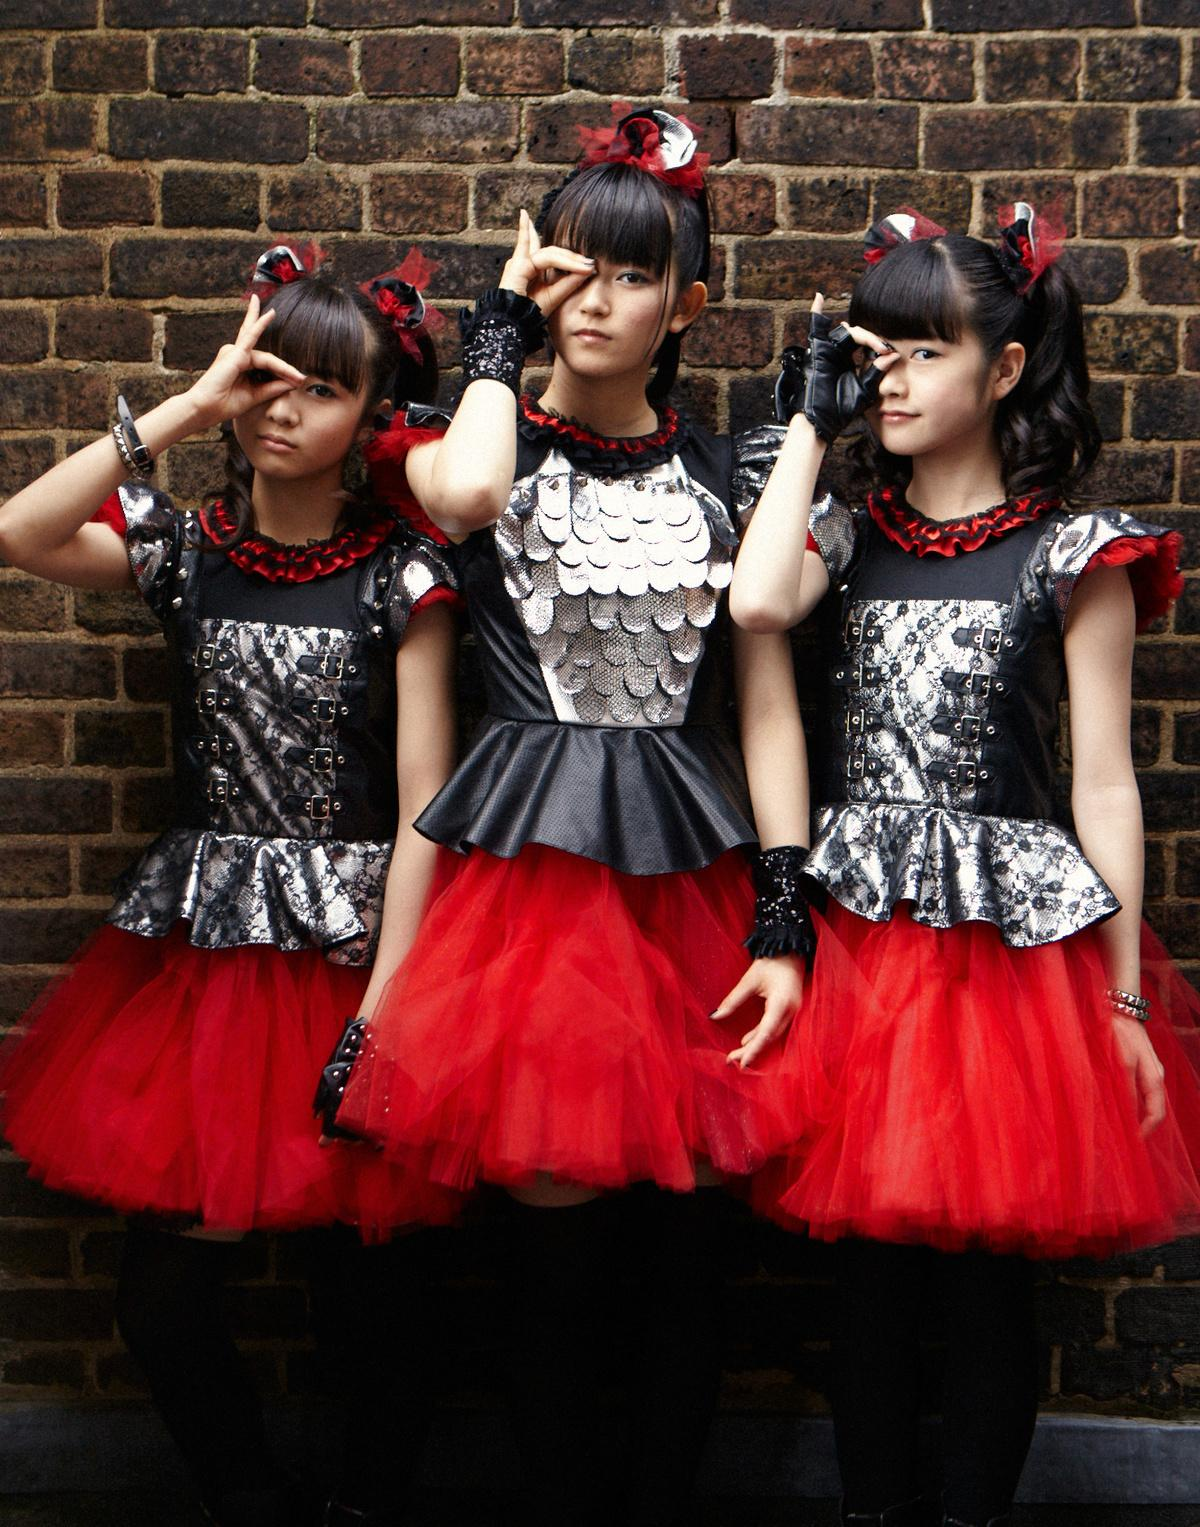 babymetal are bringing kawaii-metal to the world | read | i-D